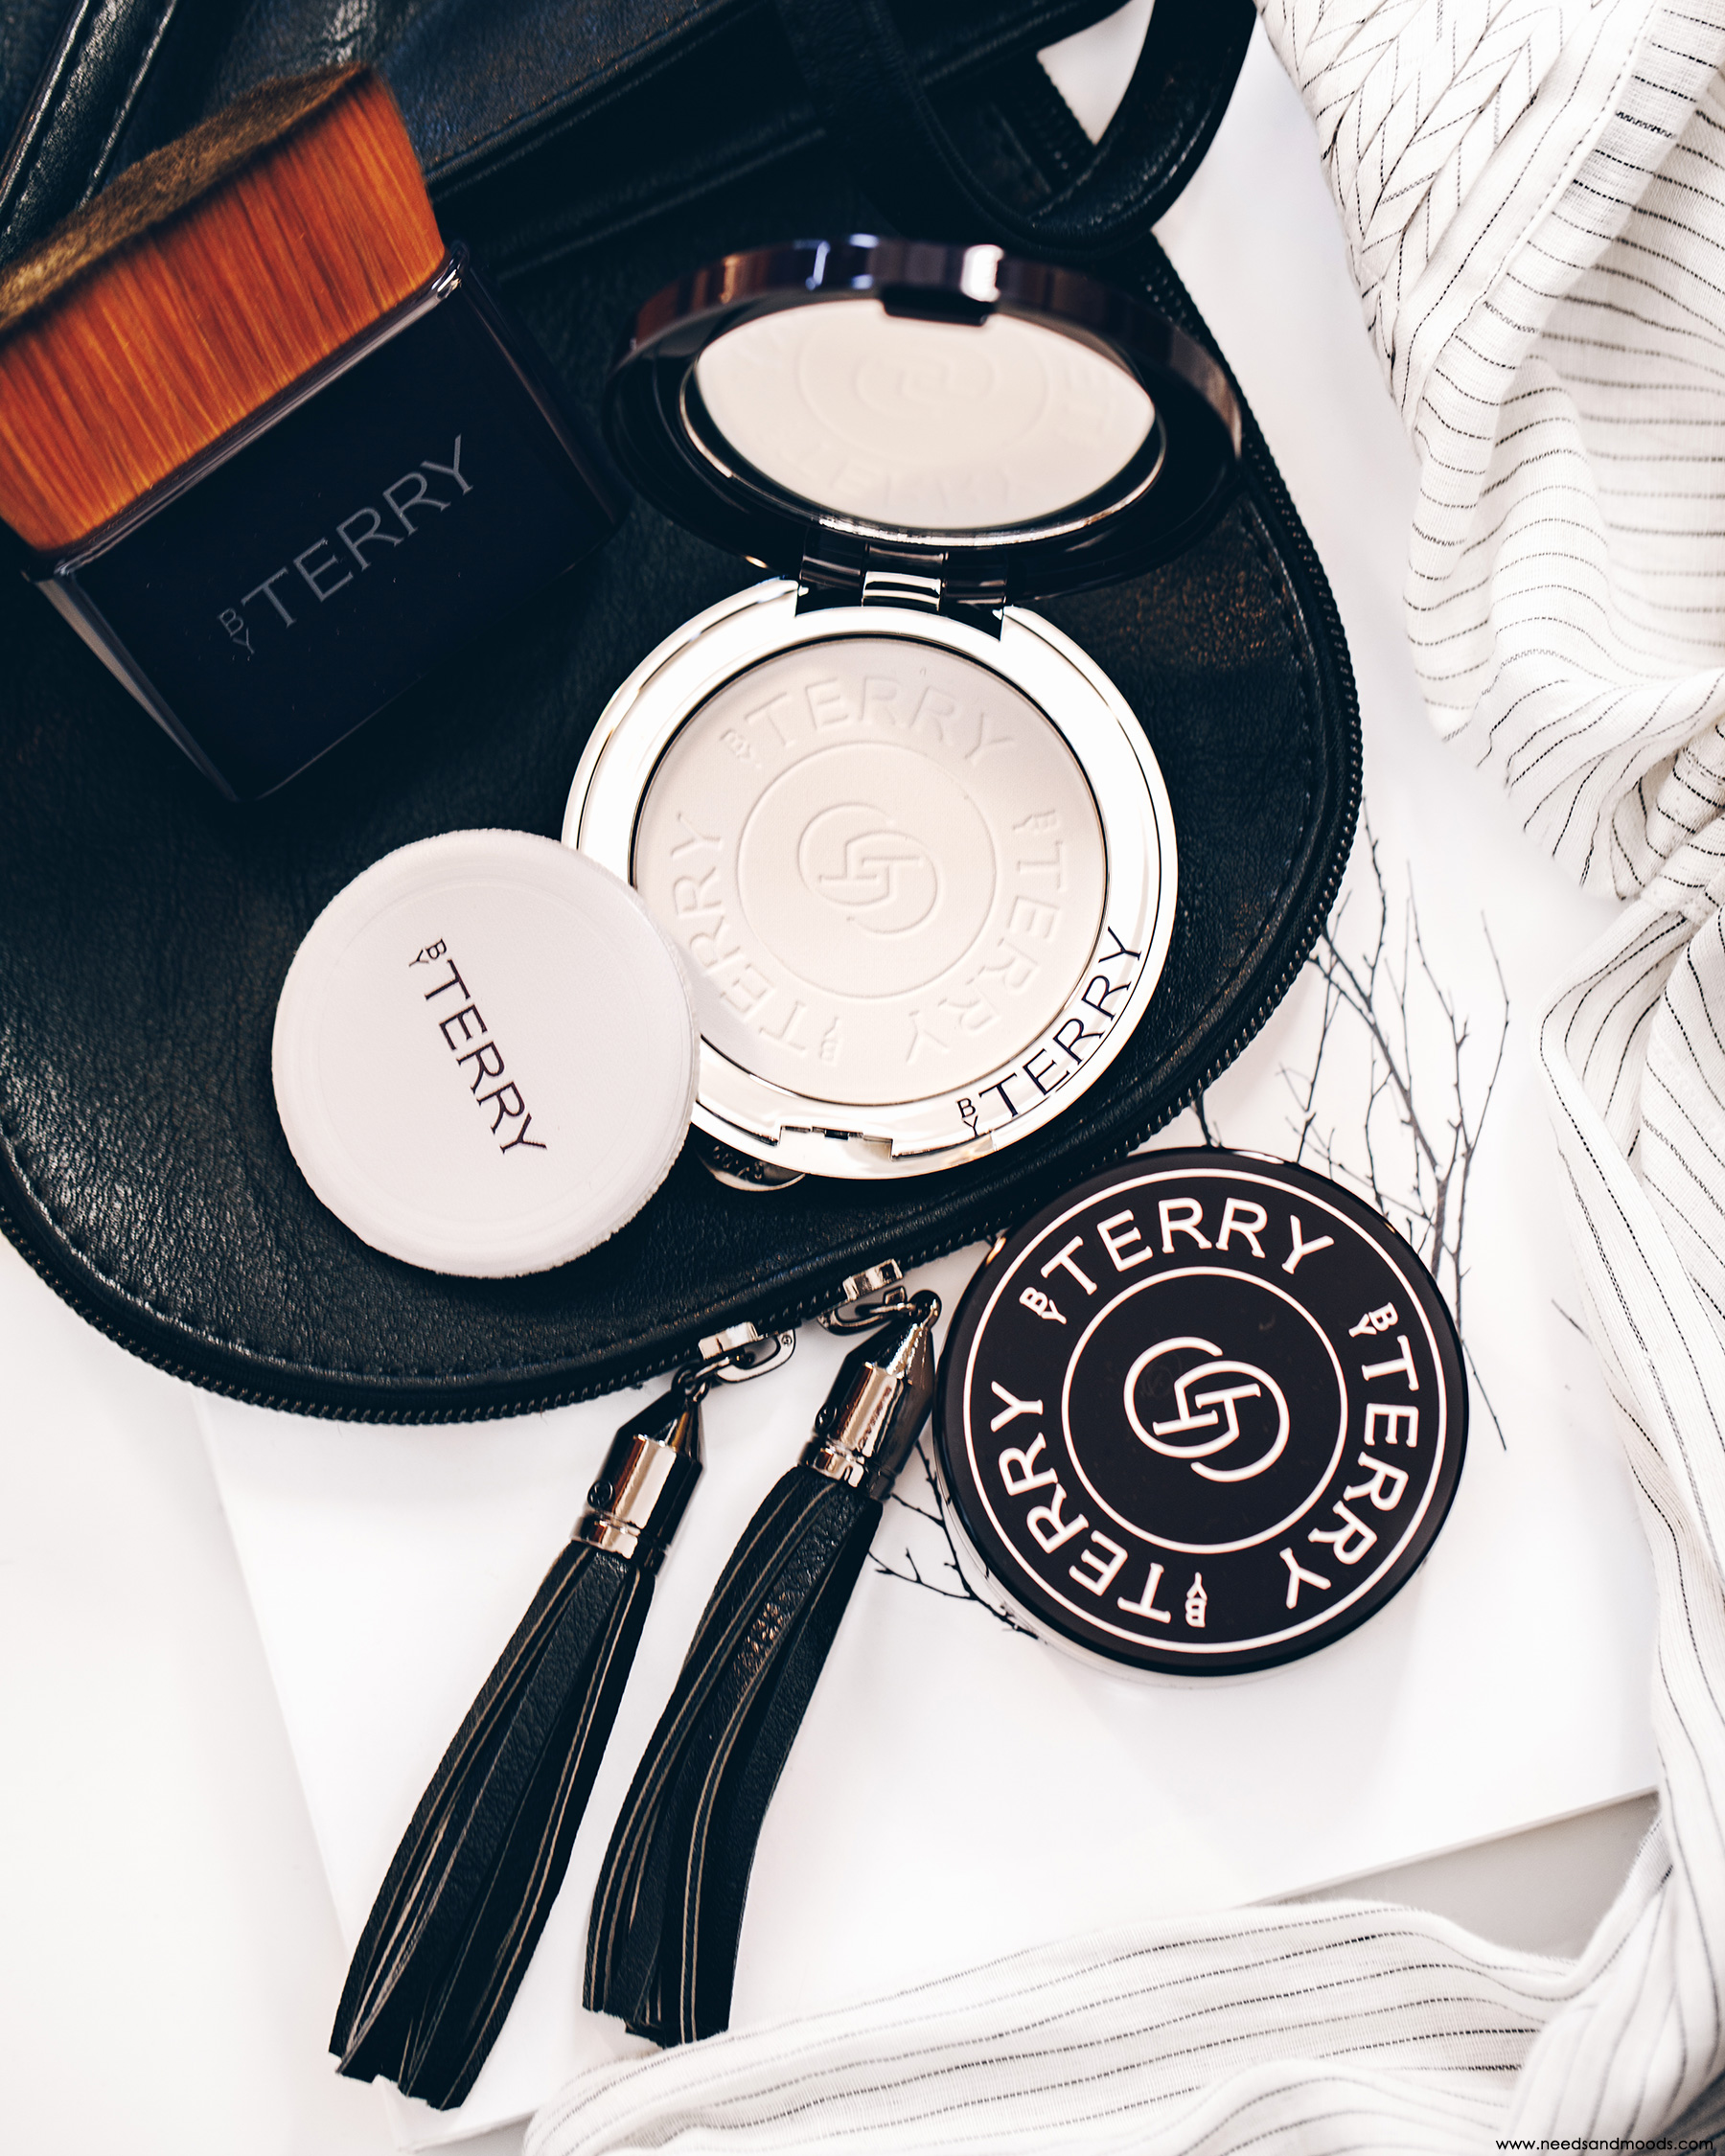 by terry Hyaluronic hydra powder pressee